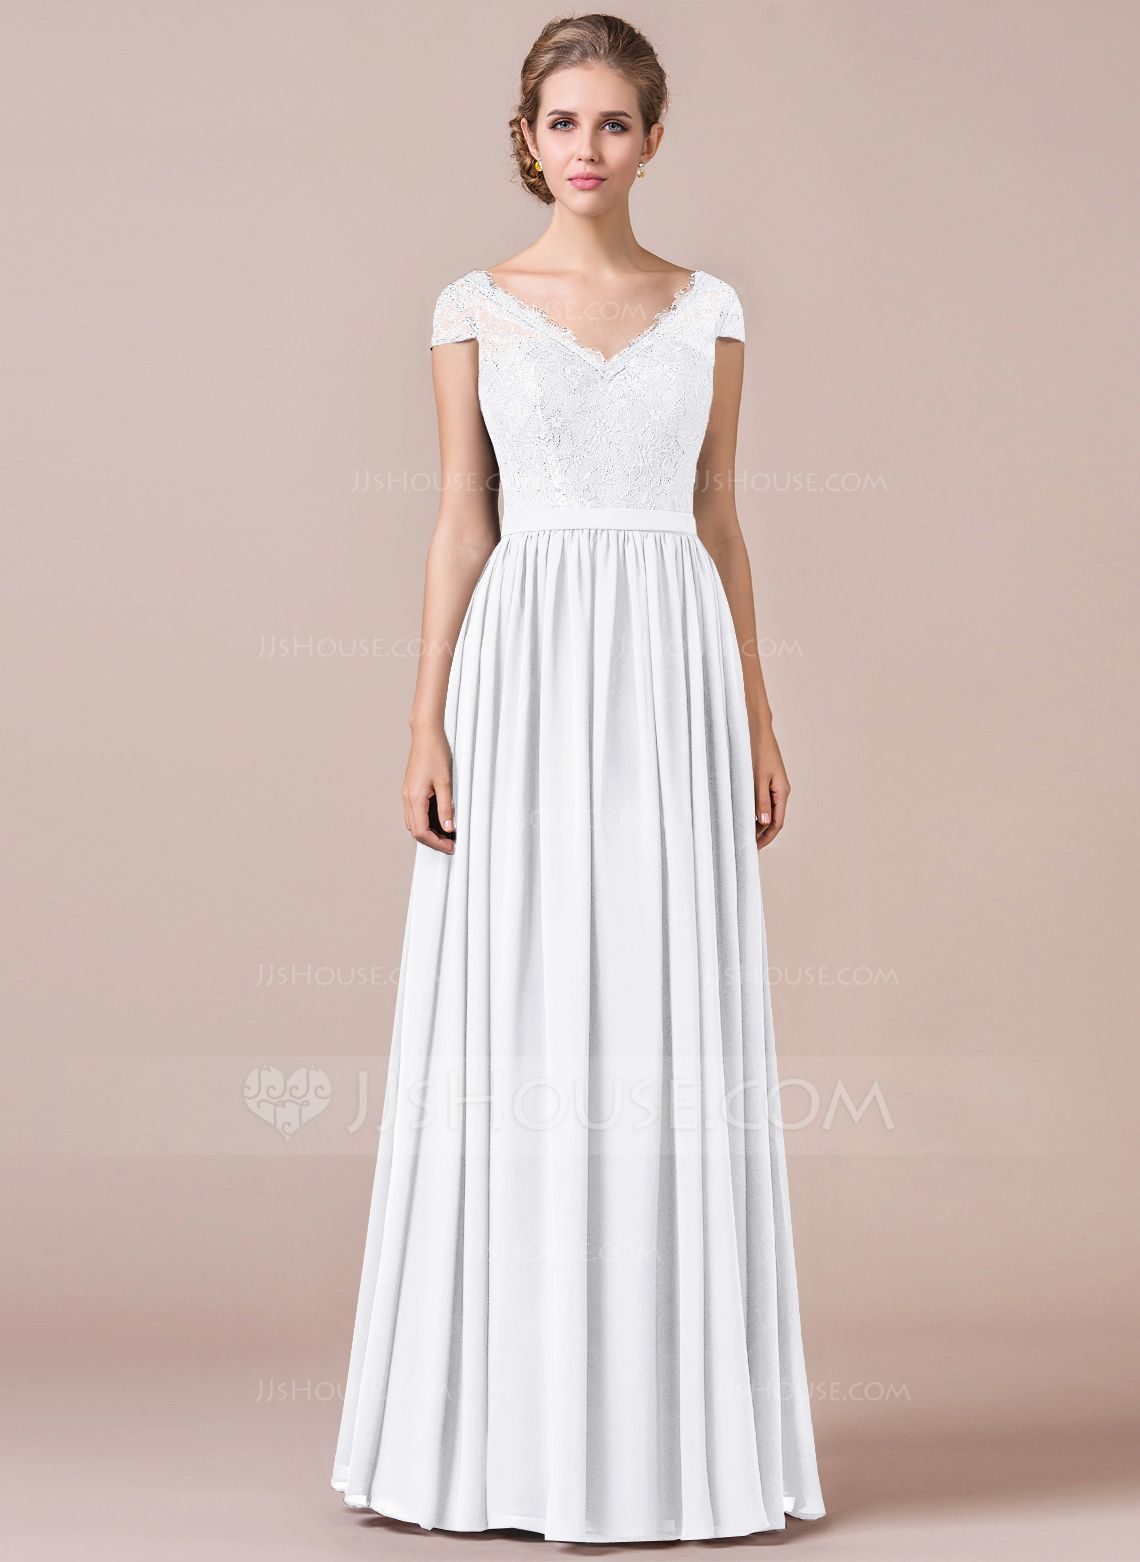 Aline cap sleeve floorlength chiffon bridesmaid dress with lace